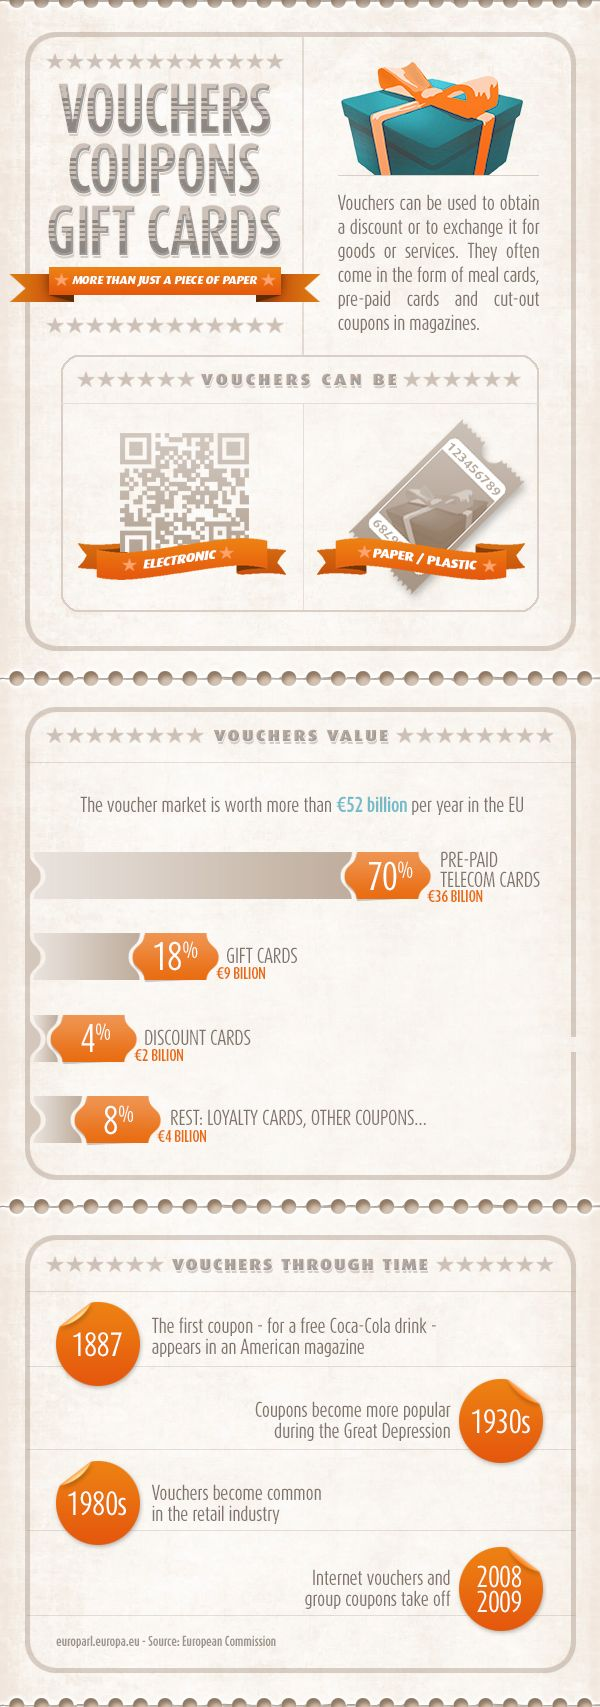 Infographic how to make issuing vouchers less taxing – How to Make Vouchers